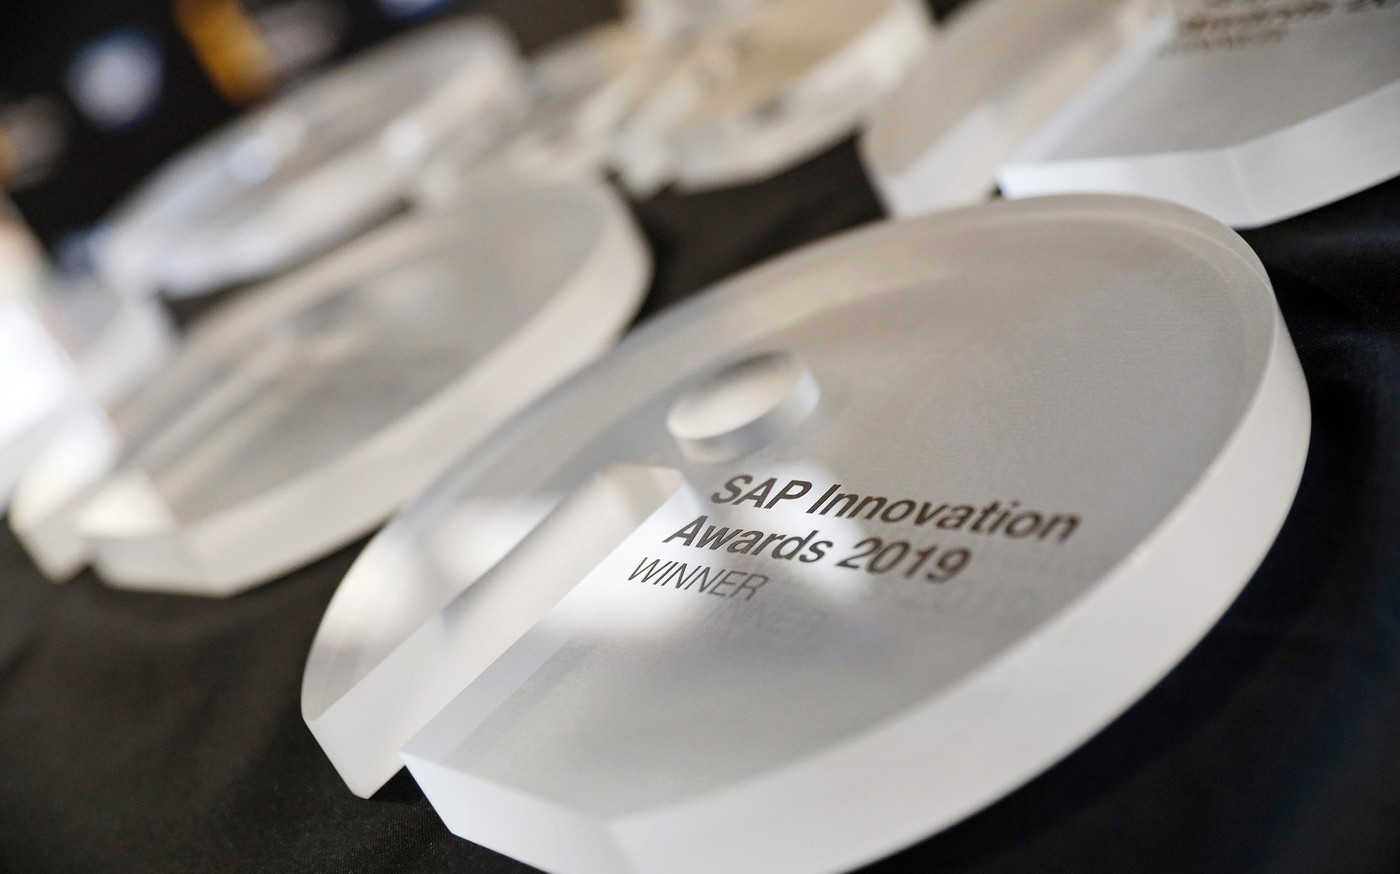 SAP Innovation Award 2019